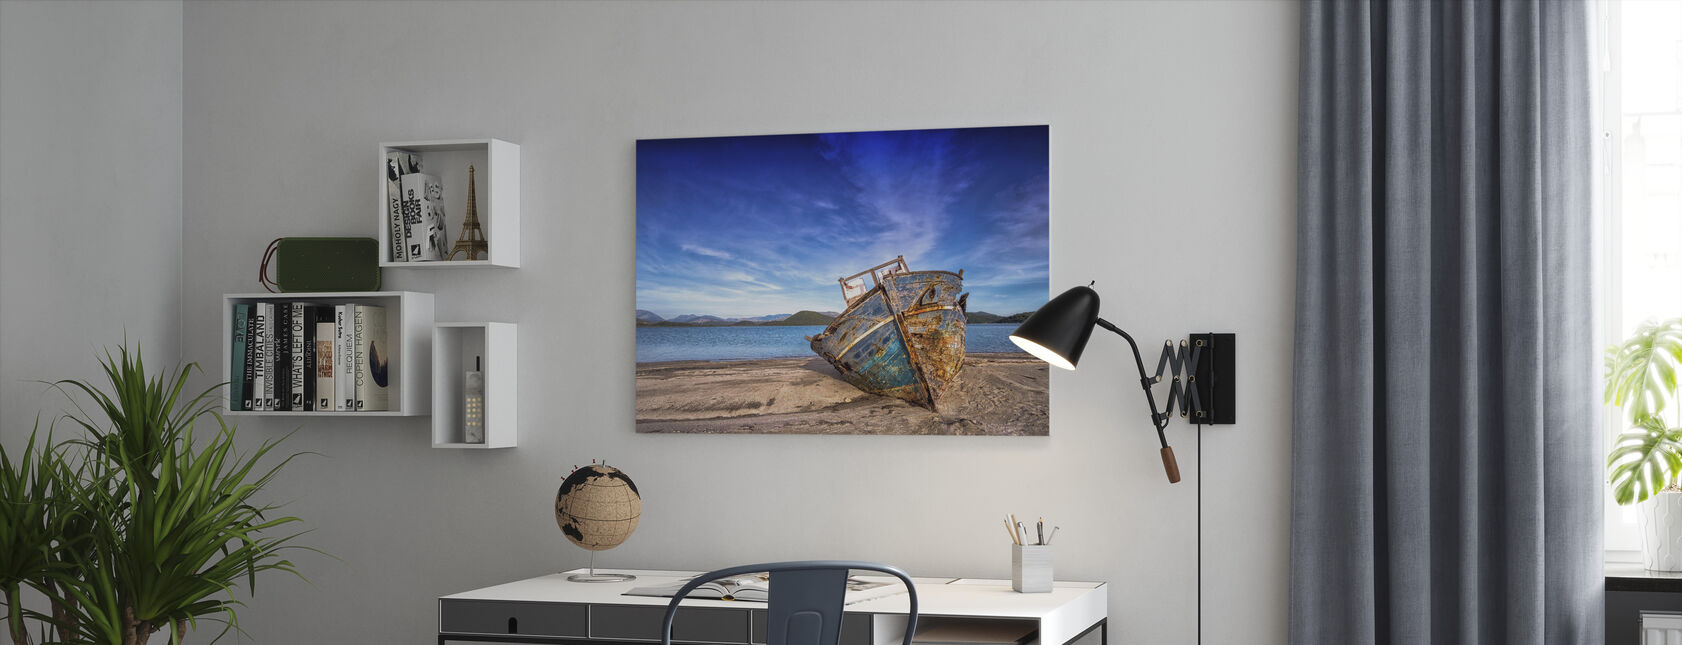 Oude Boot - Canvas print - Kantoor